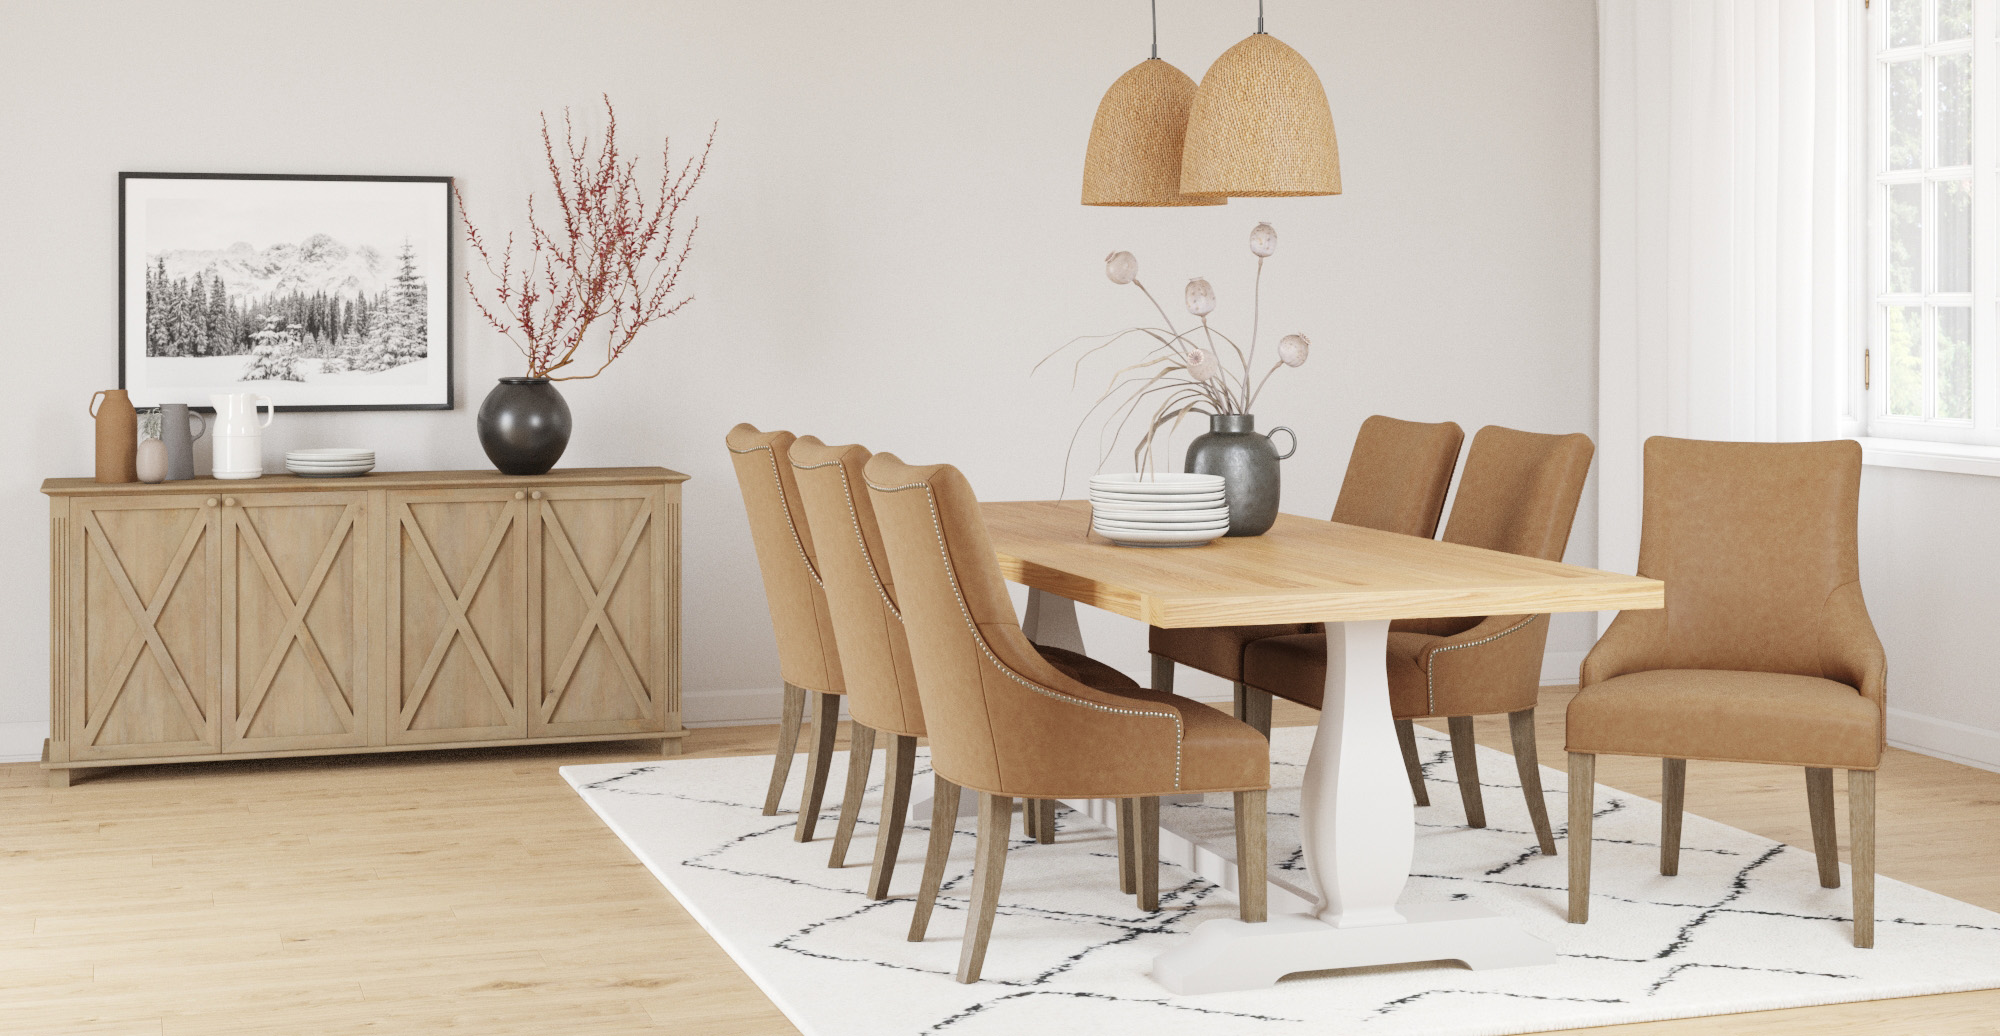 Brosa Zoe Leather Scoop Back Dining Chair styled in classic traditional dining room